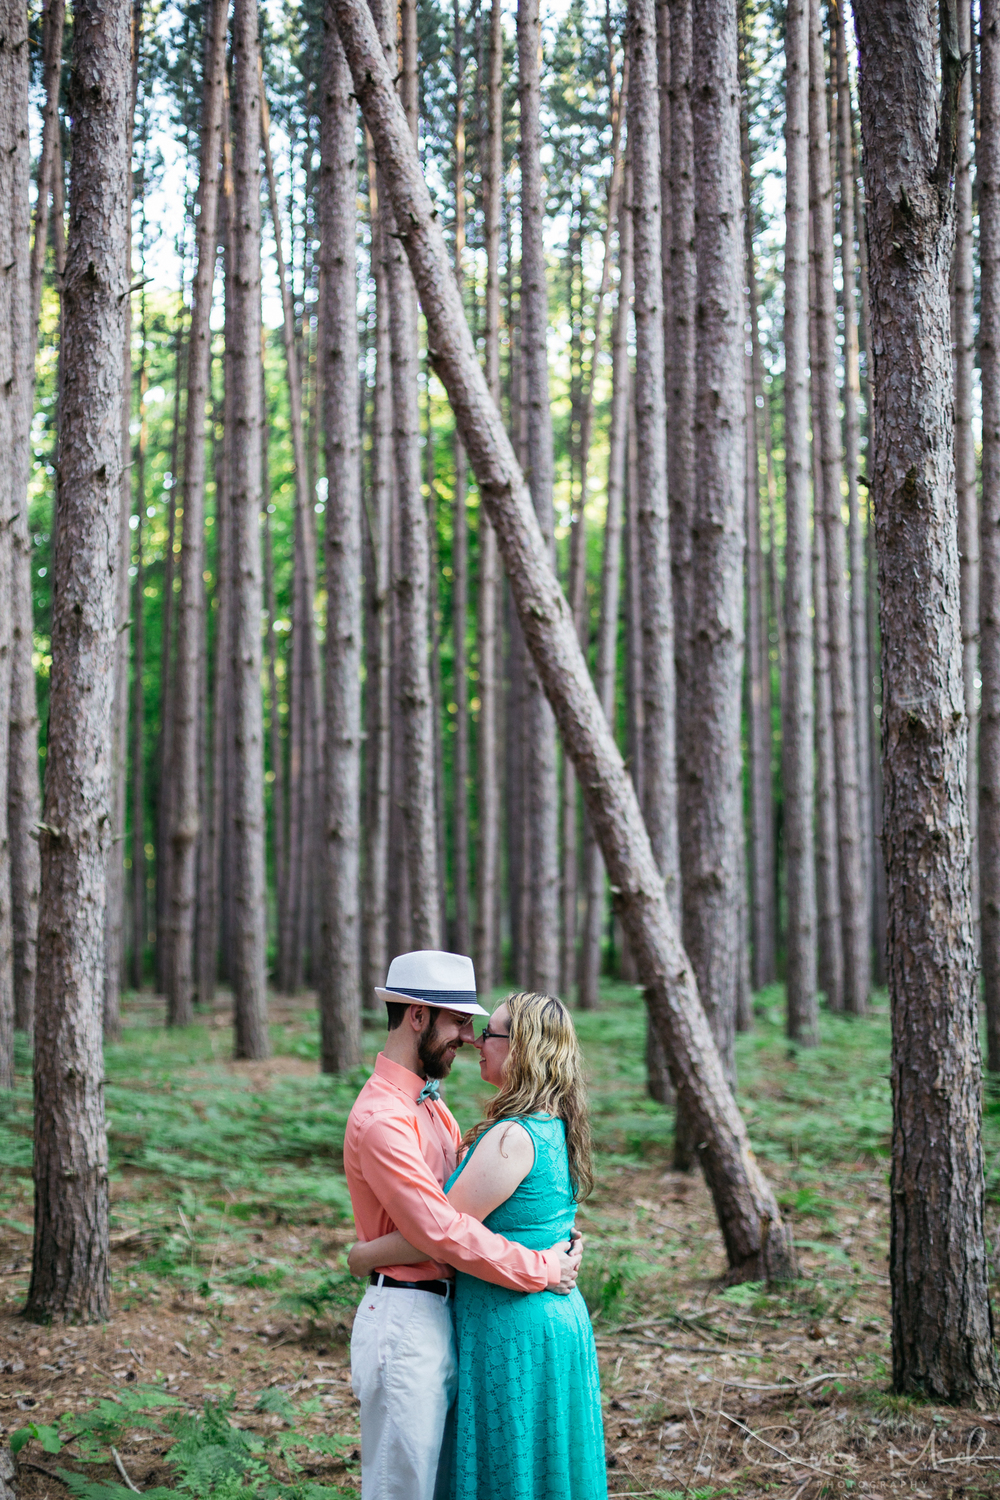 Oak Openings MetroPark Ohio - Peter and Rachel Engaged - Corrie Mick Photography-10.jpg